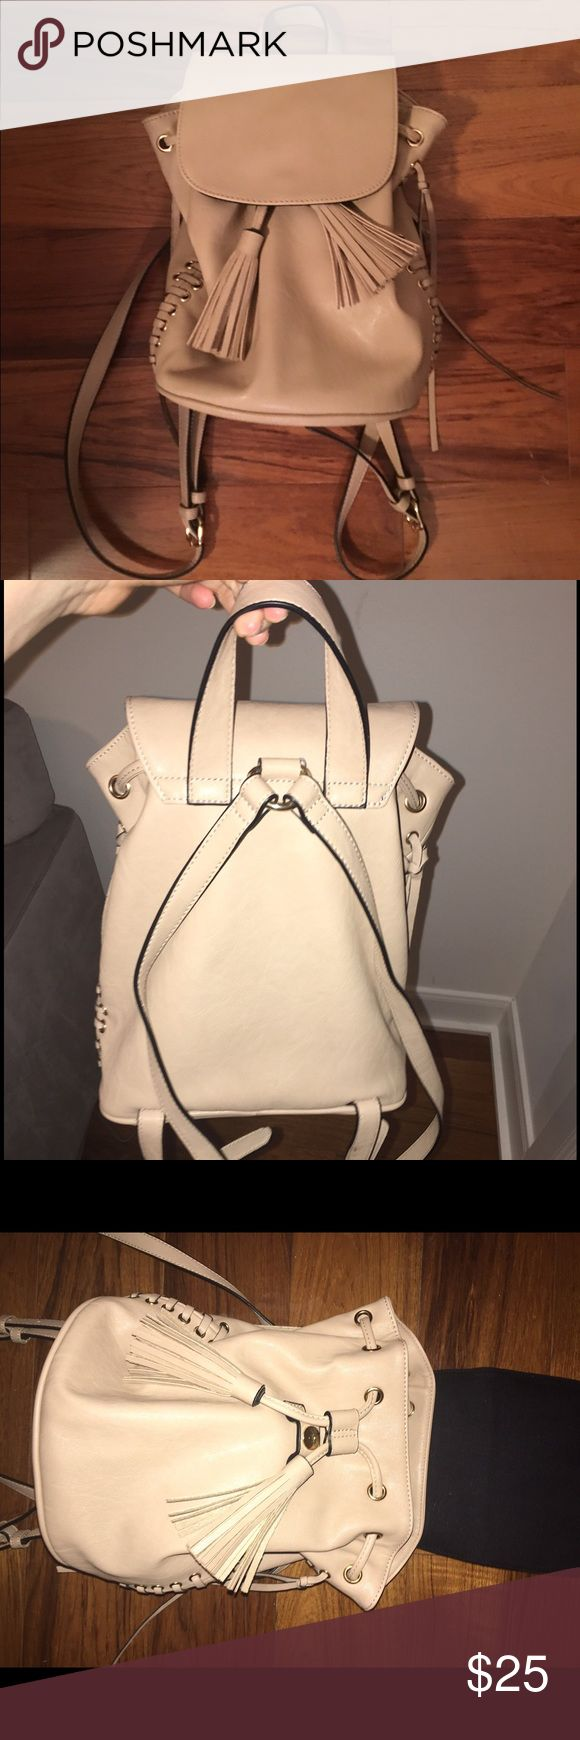 Backpack ✔️⚡️ Beige backpack Only Carried once Perfect condition  No stains or damages Perfect condition Forever 21 Bags Backpacks